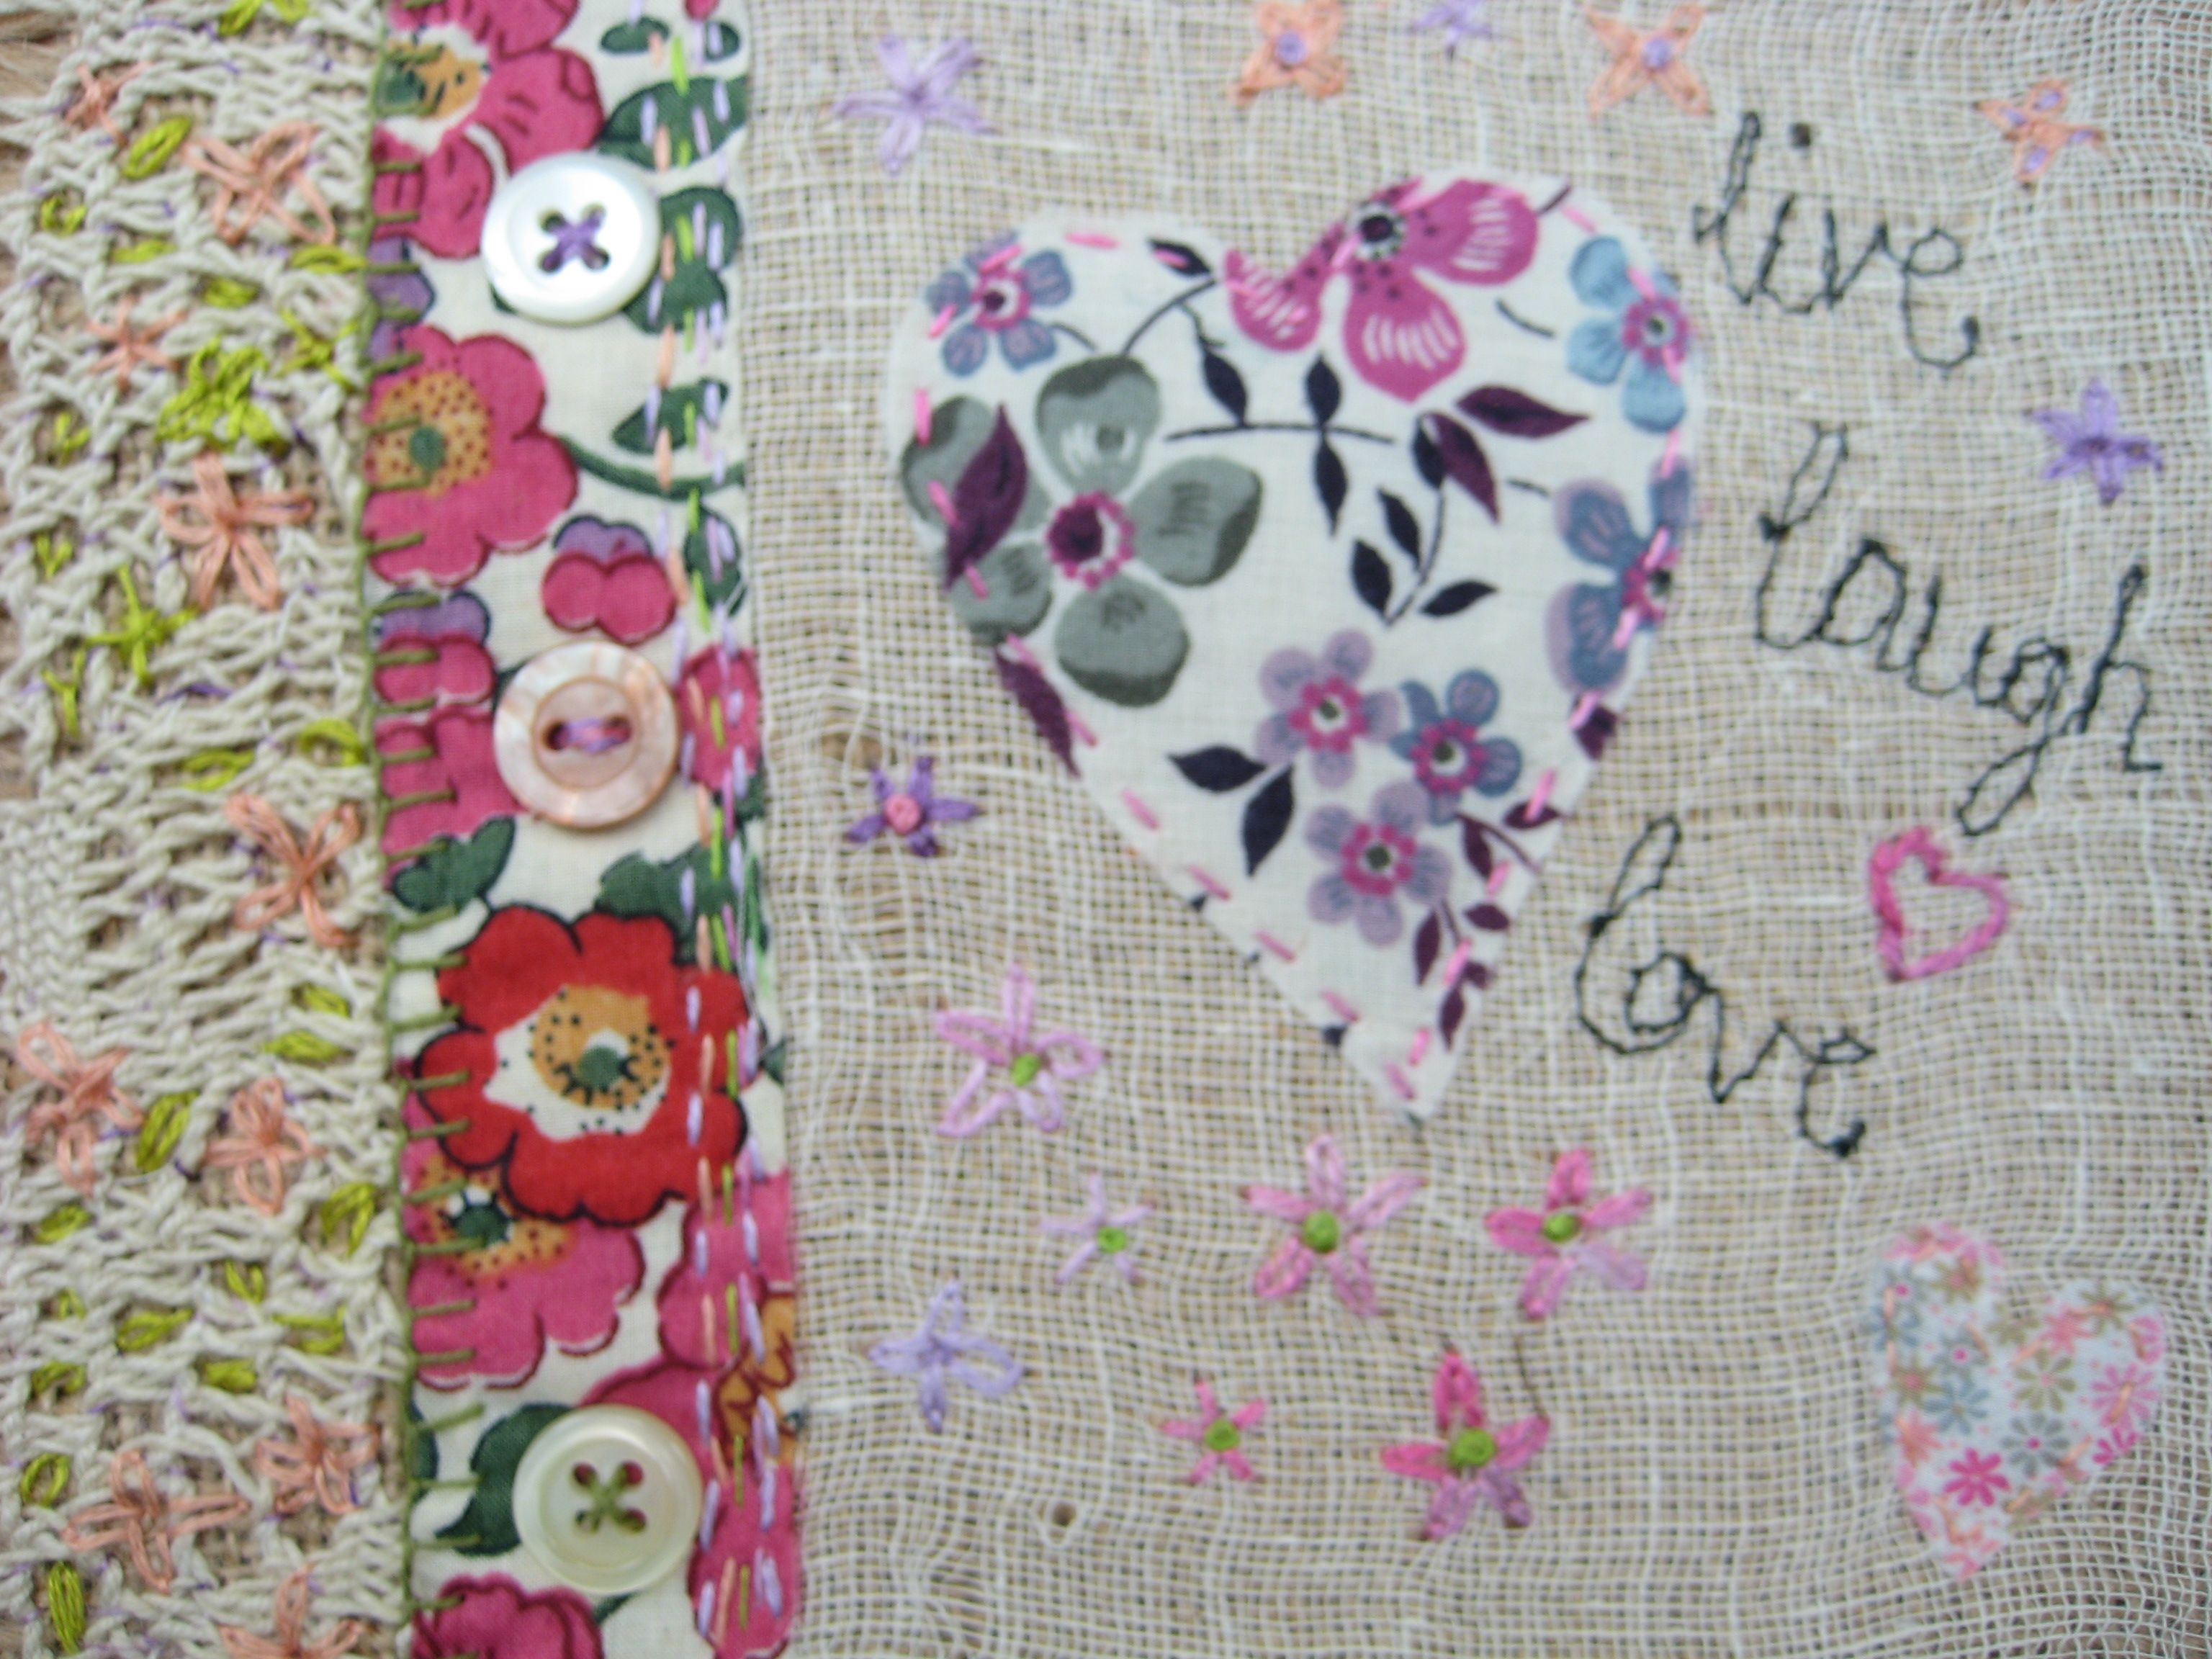 #Libery fabric hand stitched picture